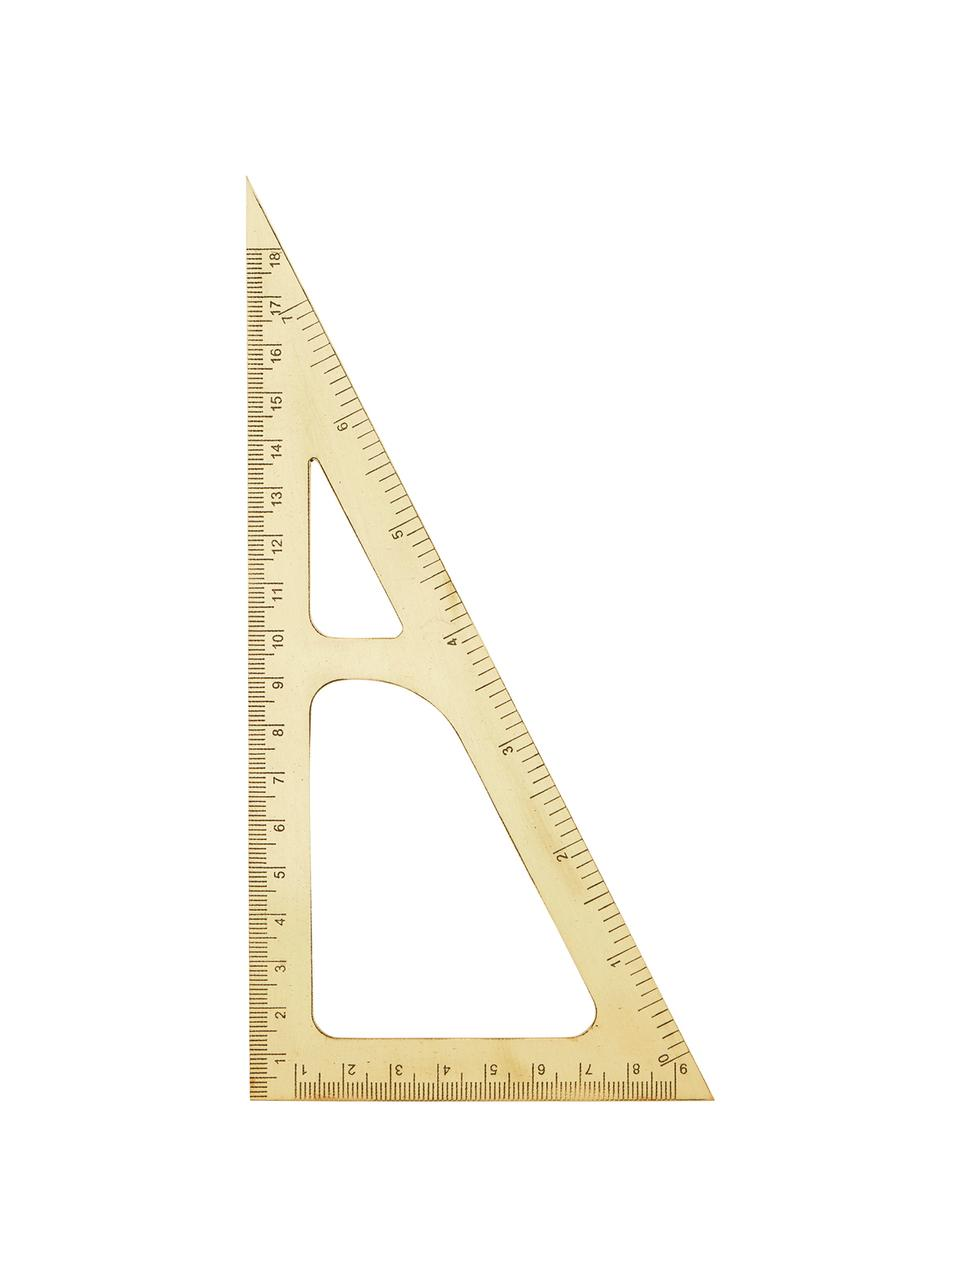 Righello dorato Ruler, Ottone, Ottone, Lung. 19 cm